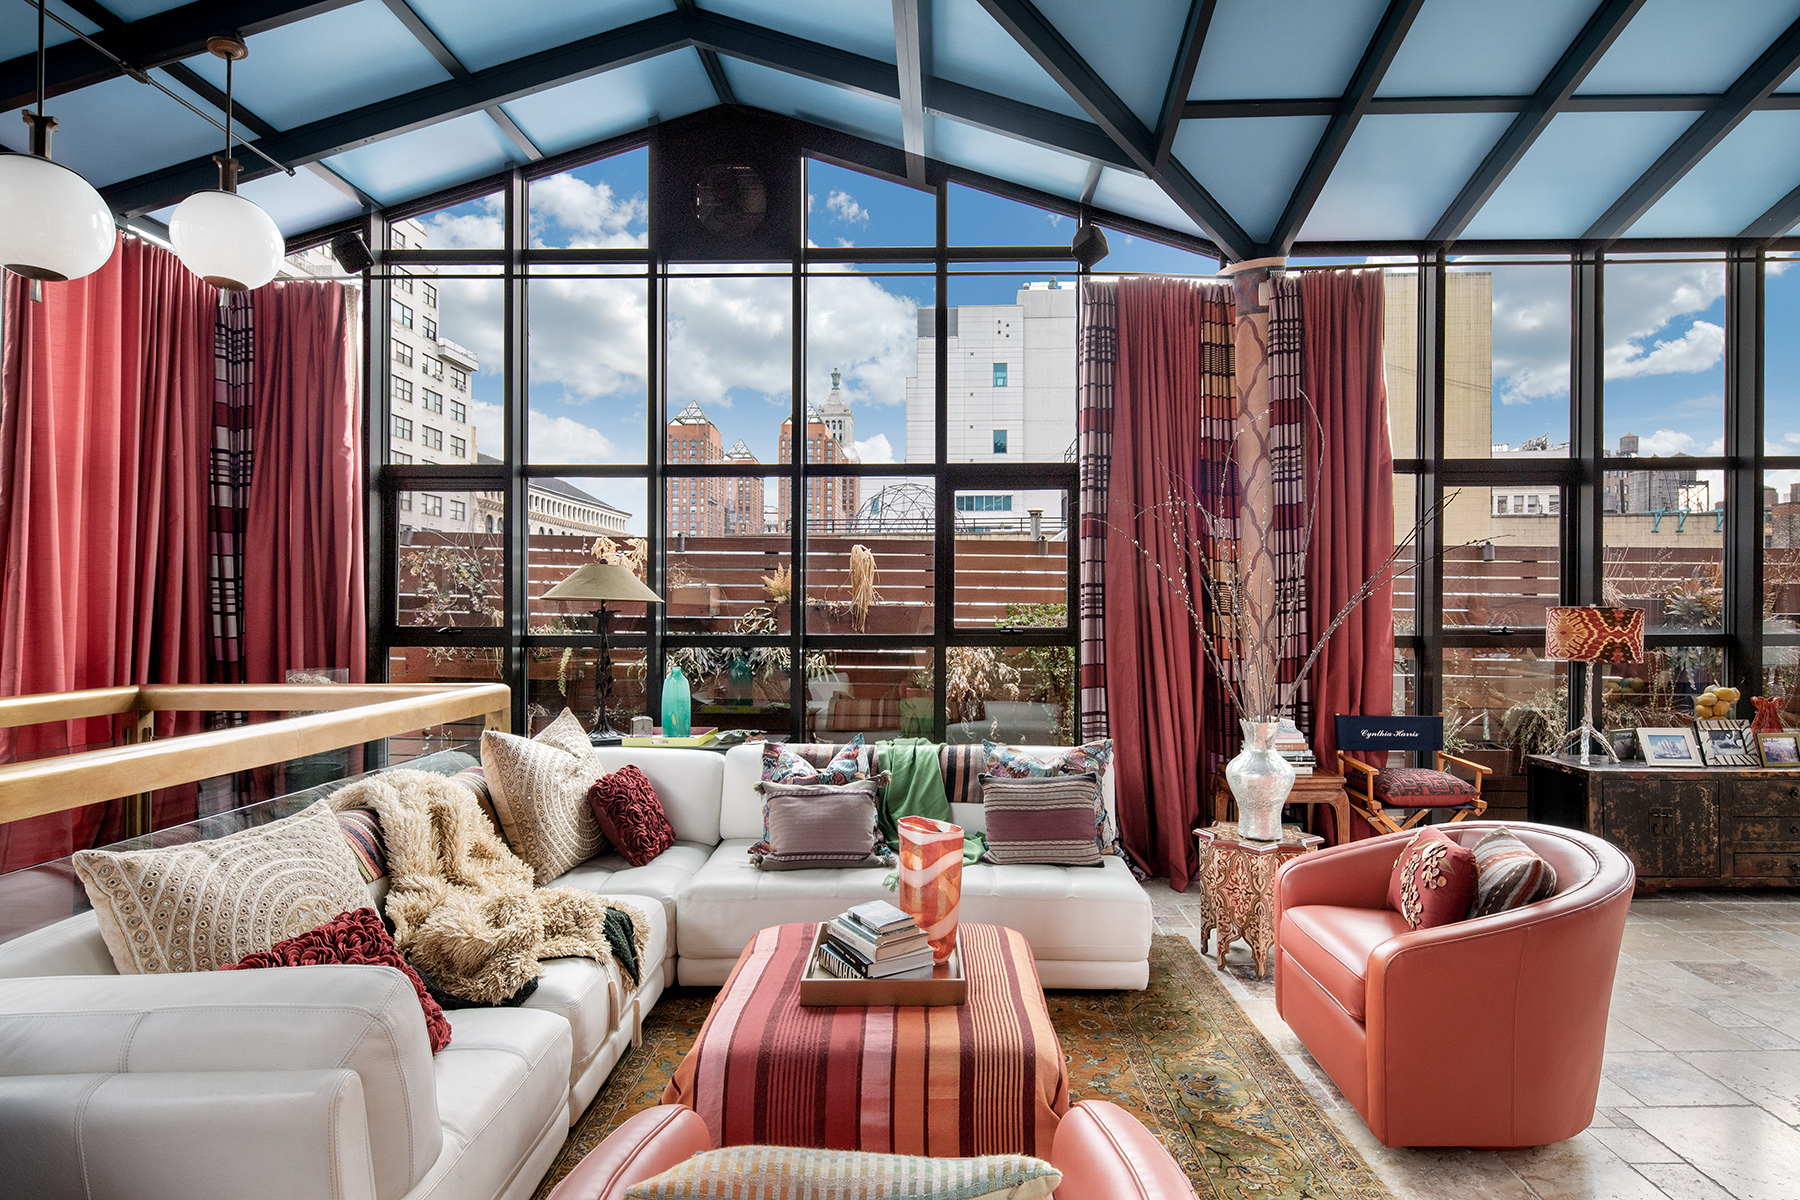 Sumptuous Greenwich Village penthouse with rooftop conservatory seeks $5.5M